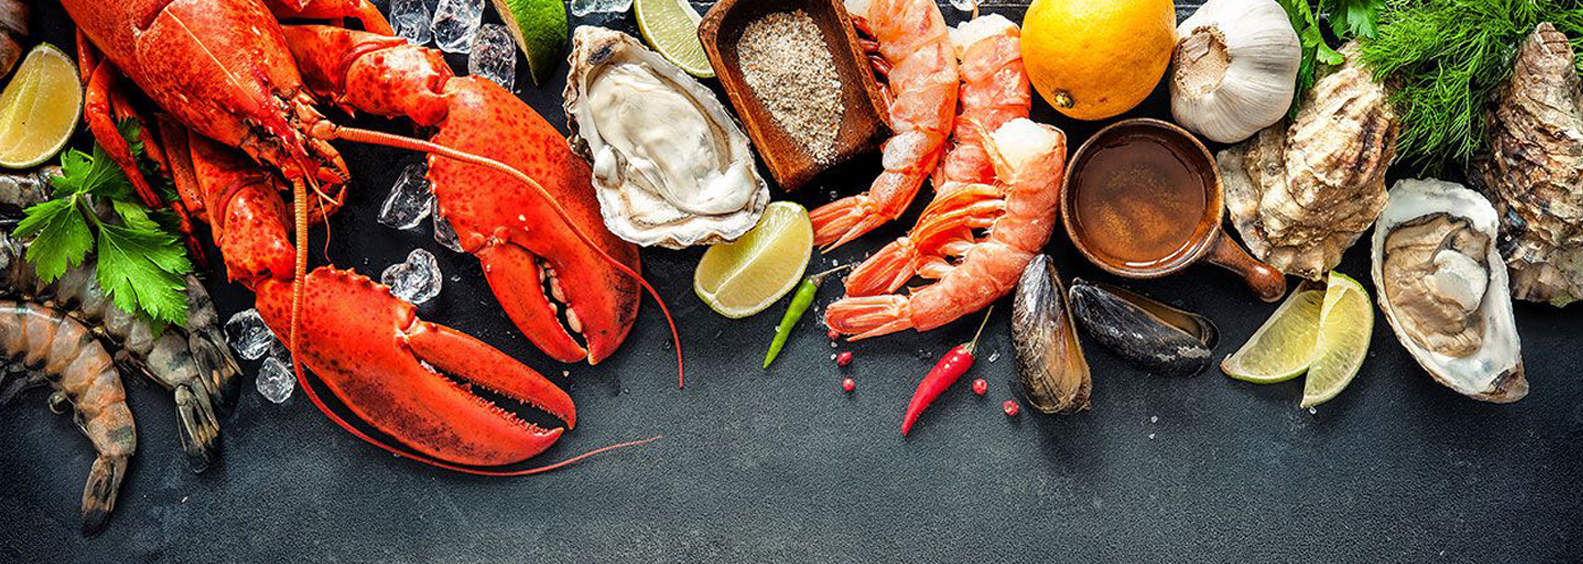 Healthy Seafood You Should be Eating More of!